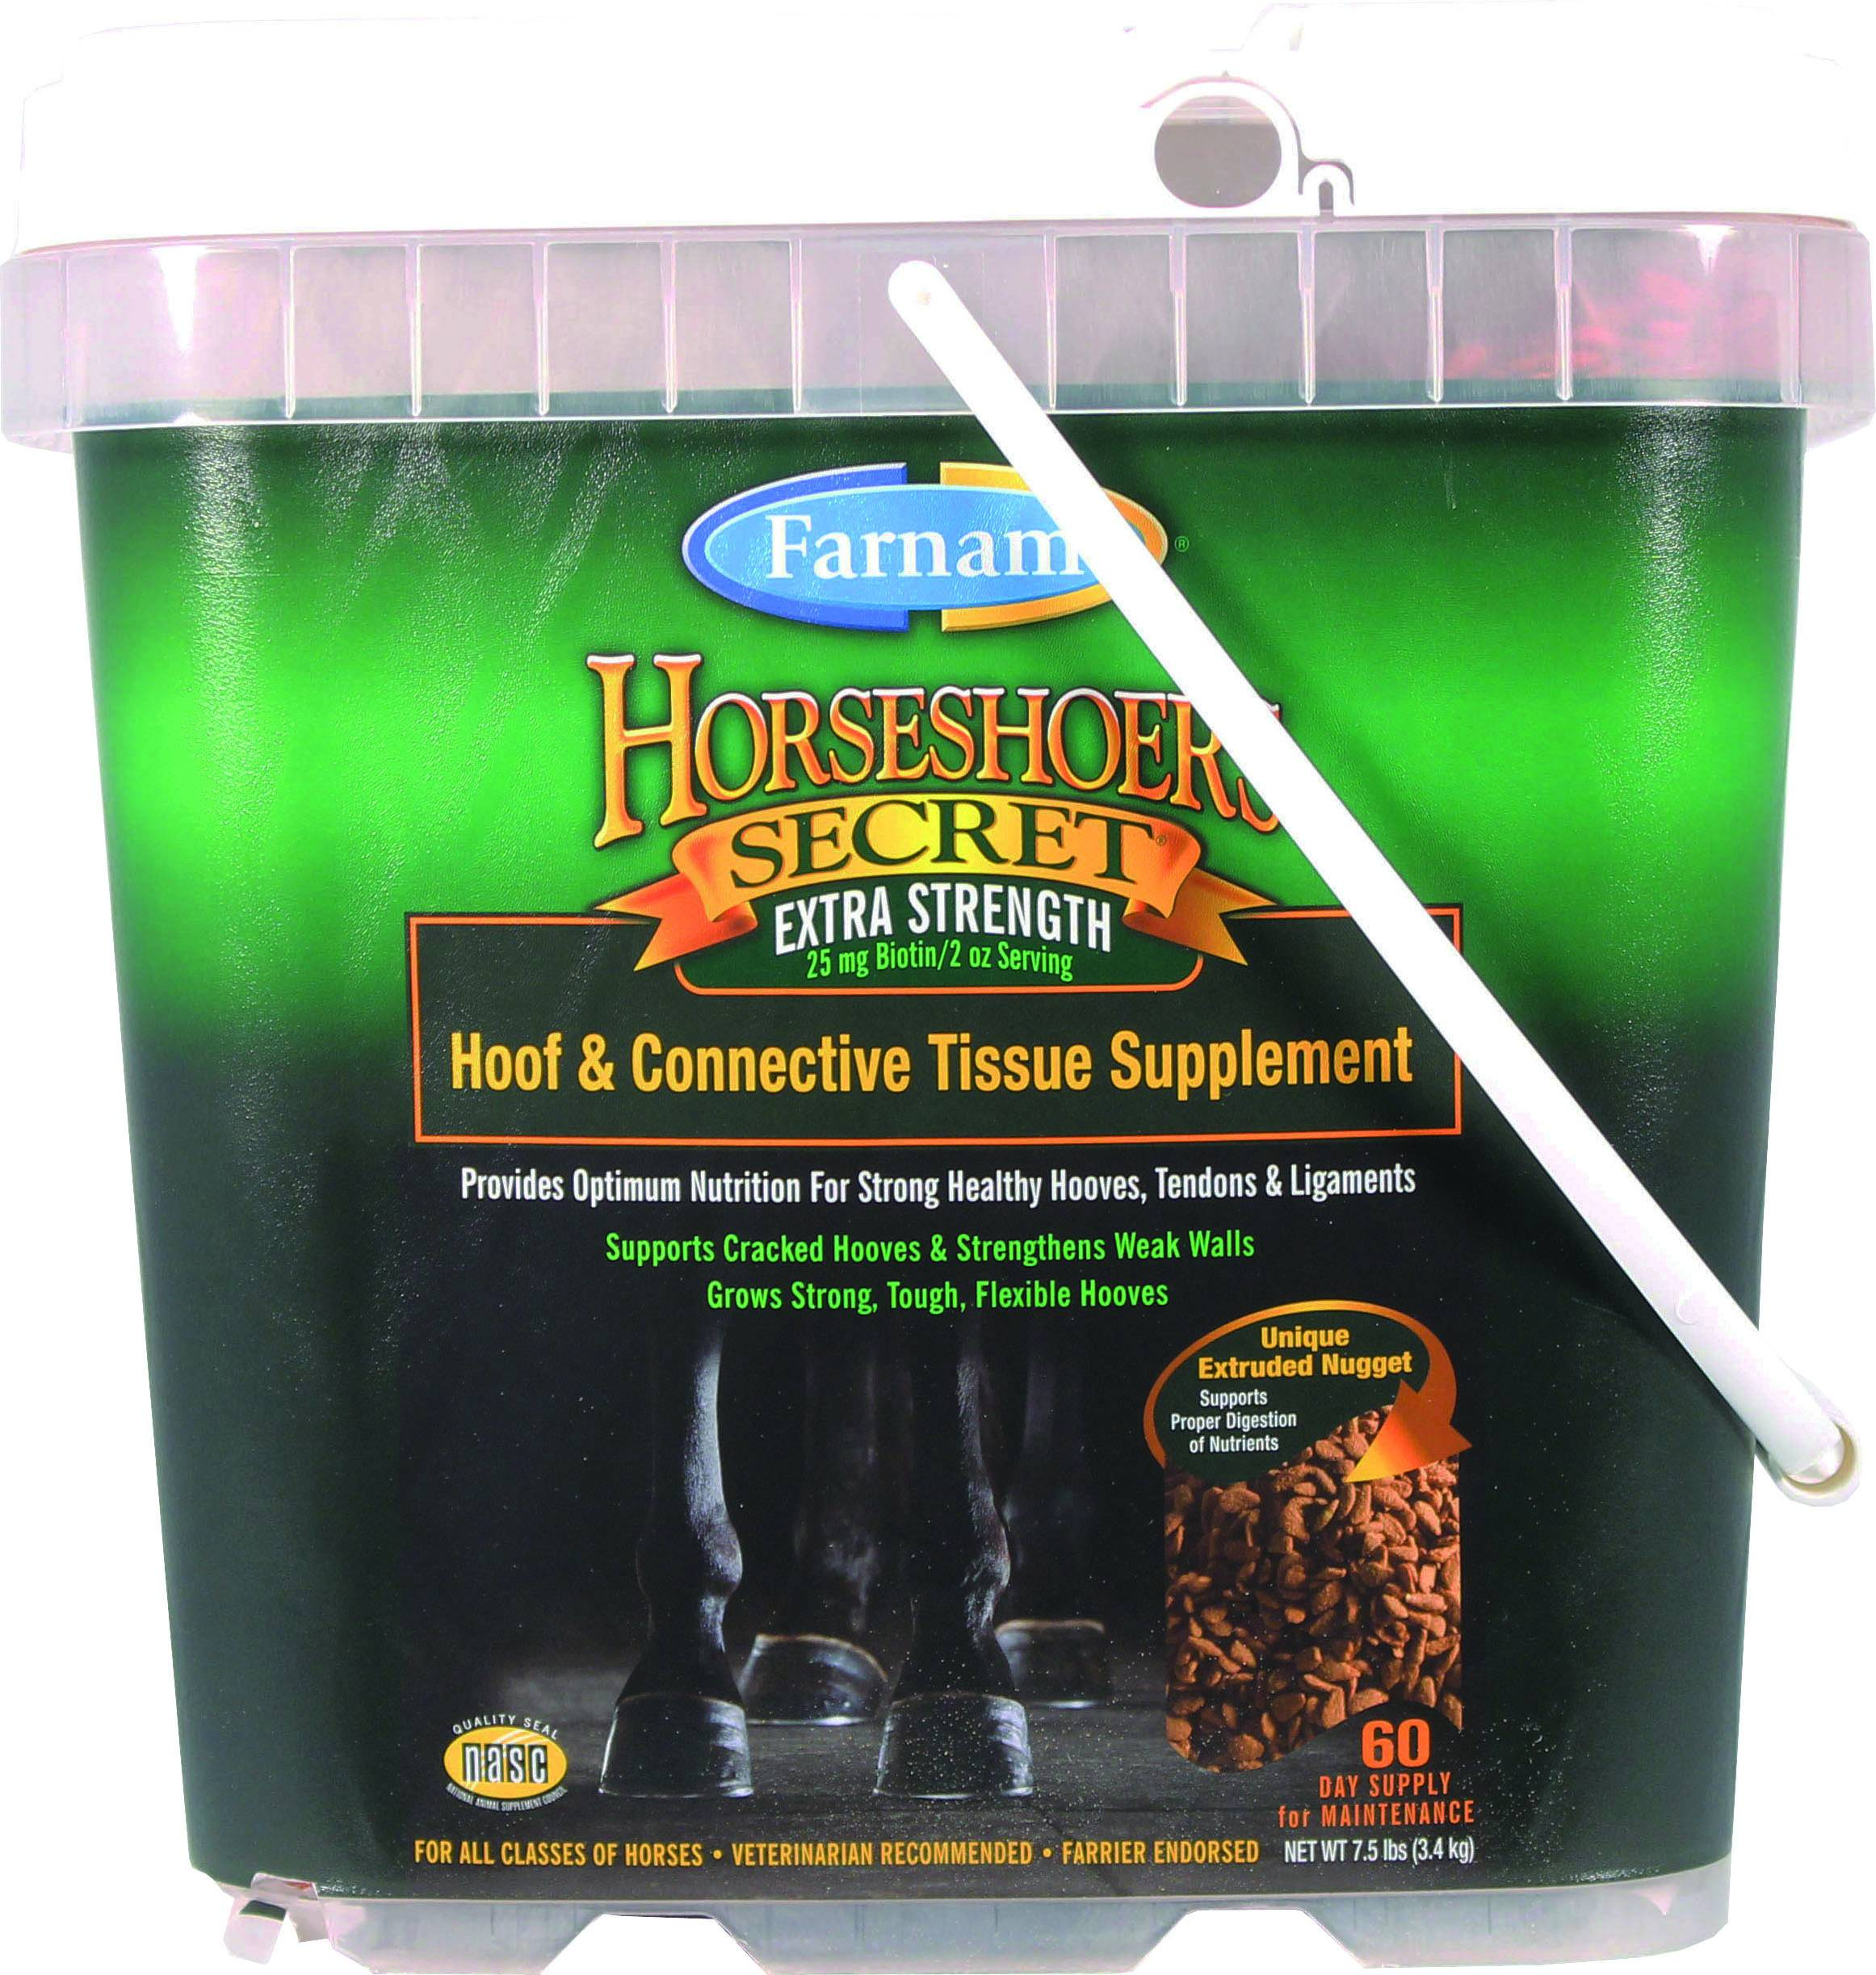 Horseshoer's Secret Extra Strength